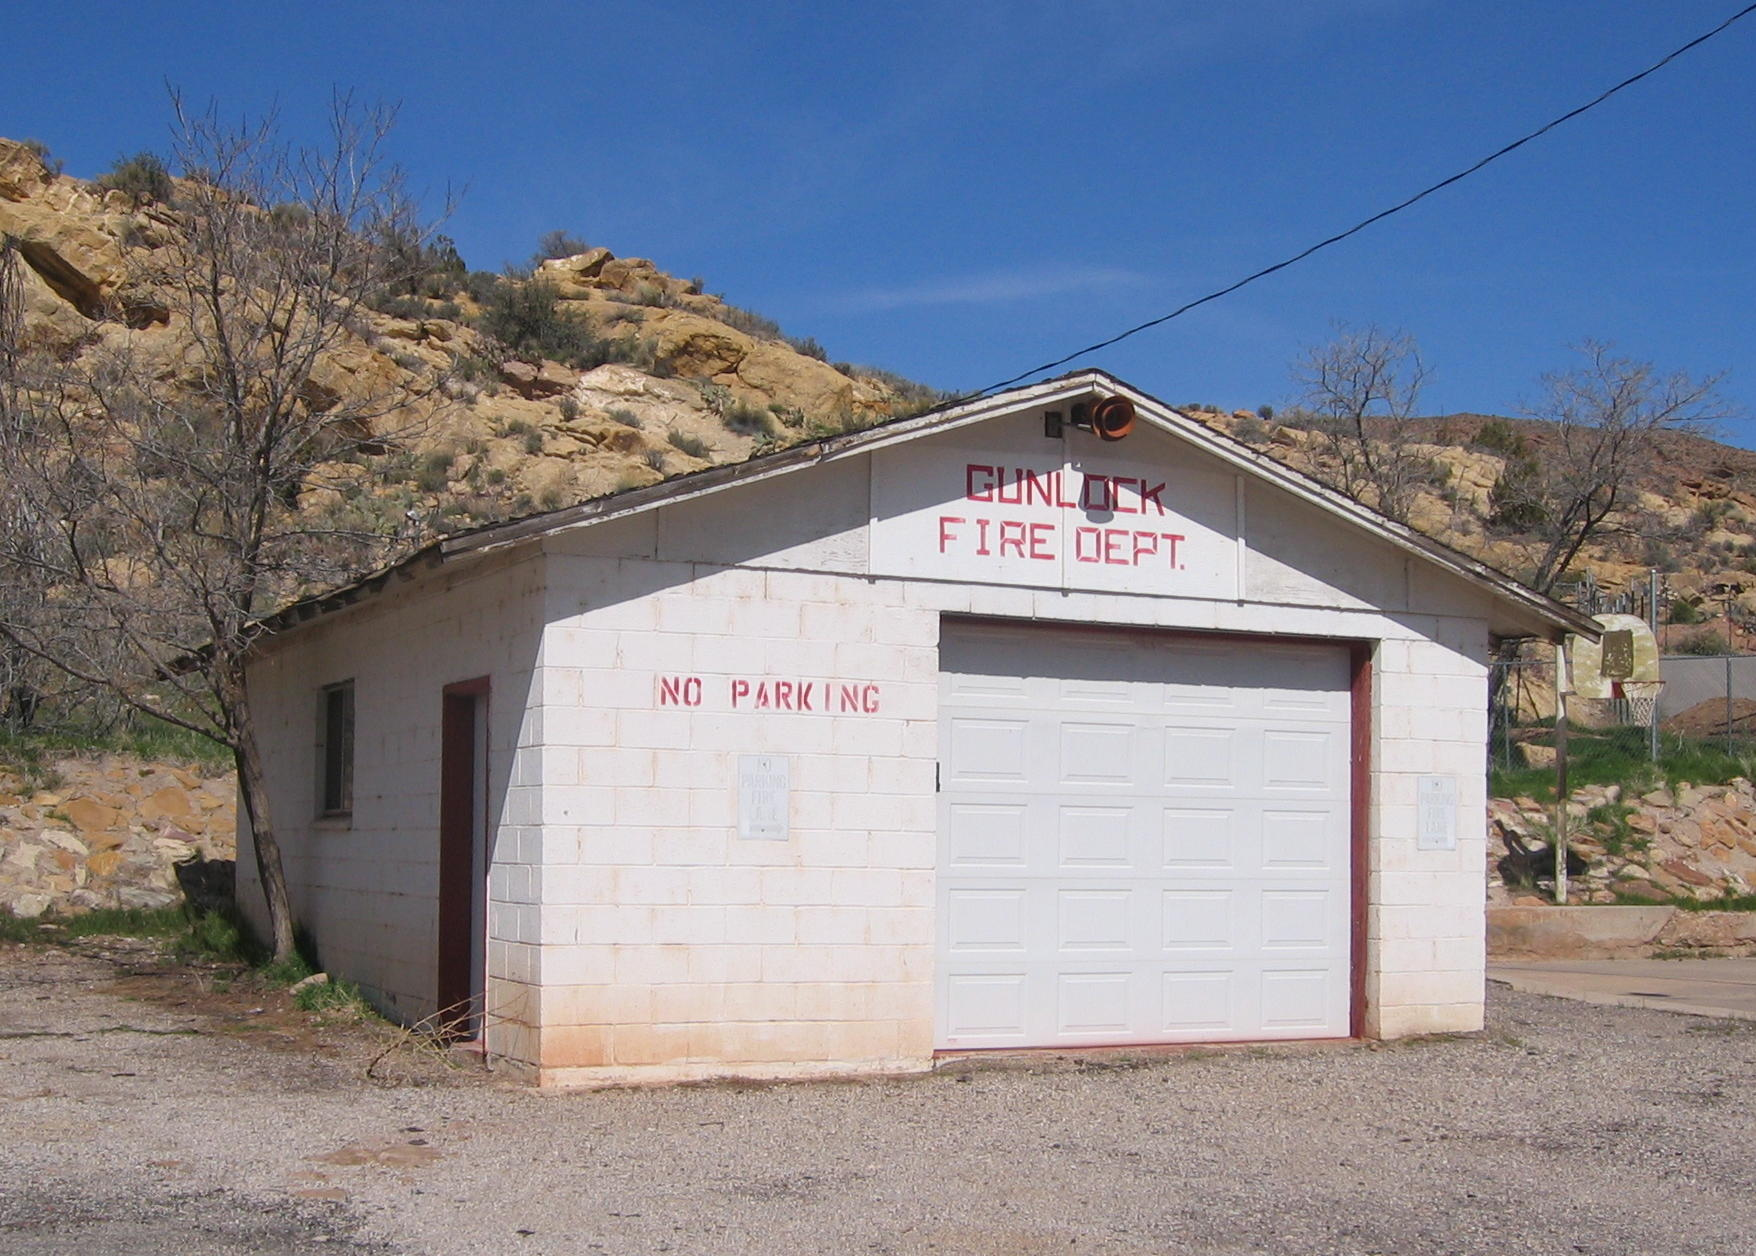 WCHS-00630 Gunlock Fire Station